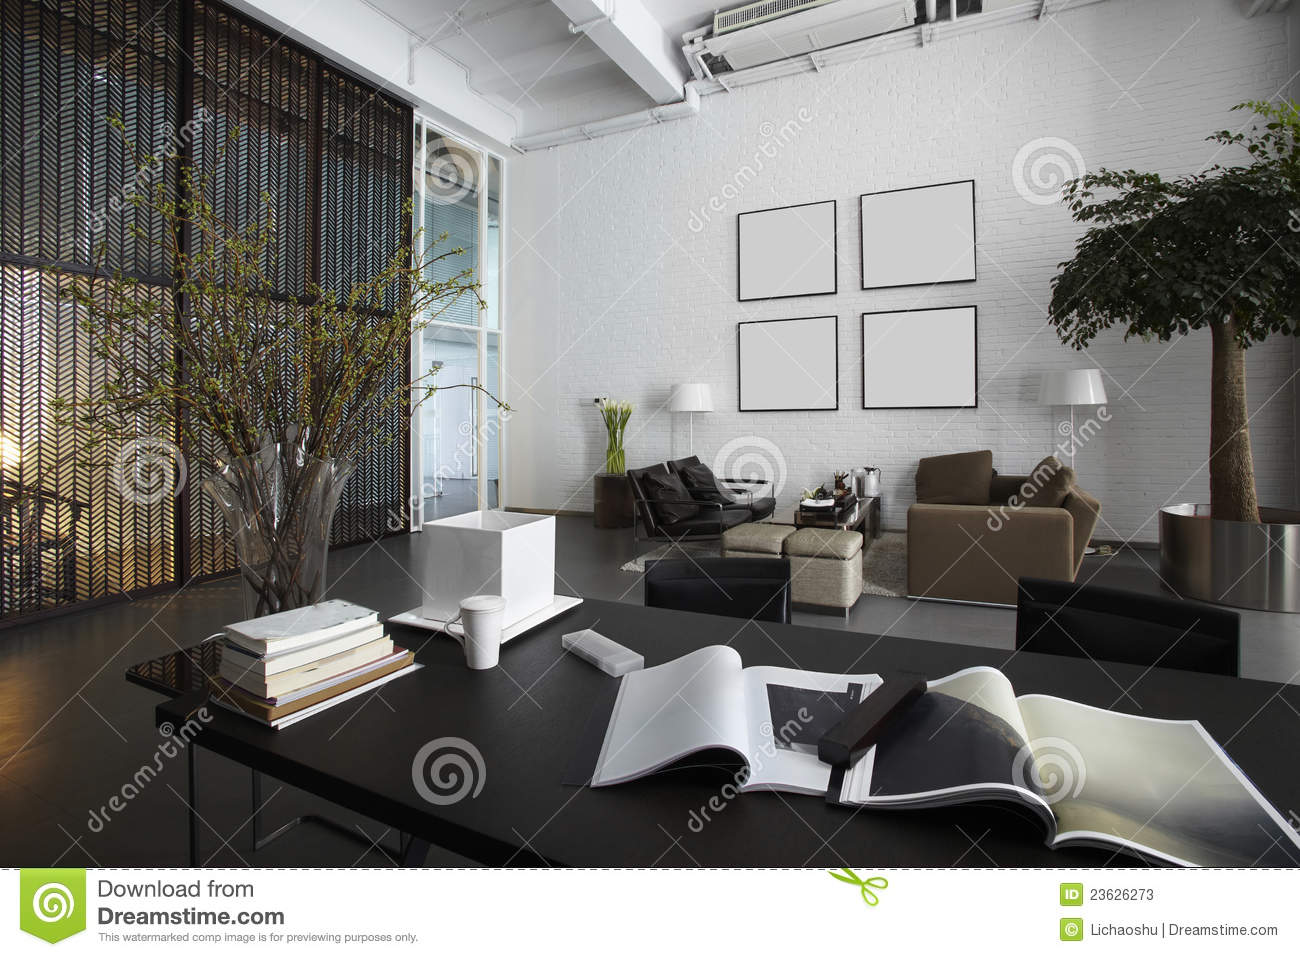 desk chair for carpet bedroom reading nook modern office space stock photos - image: 23626273